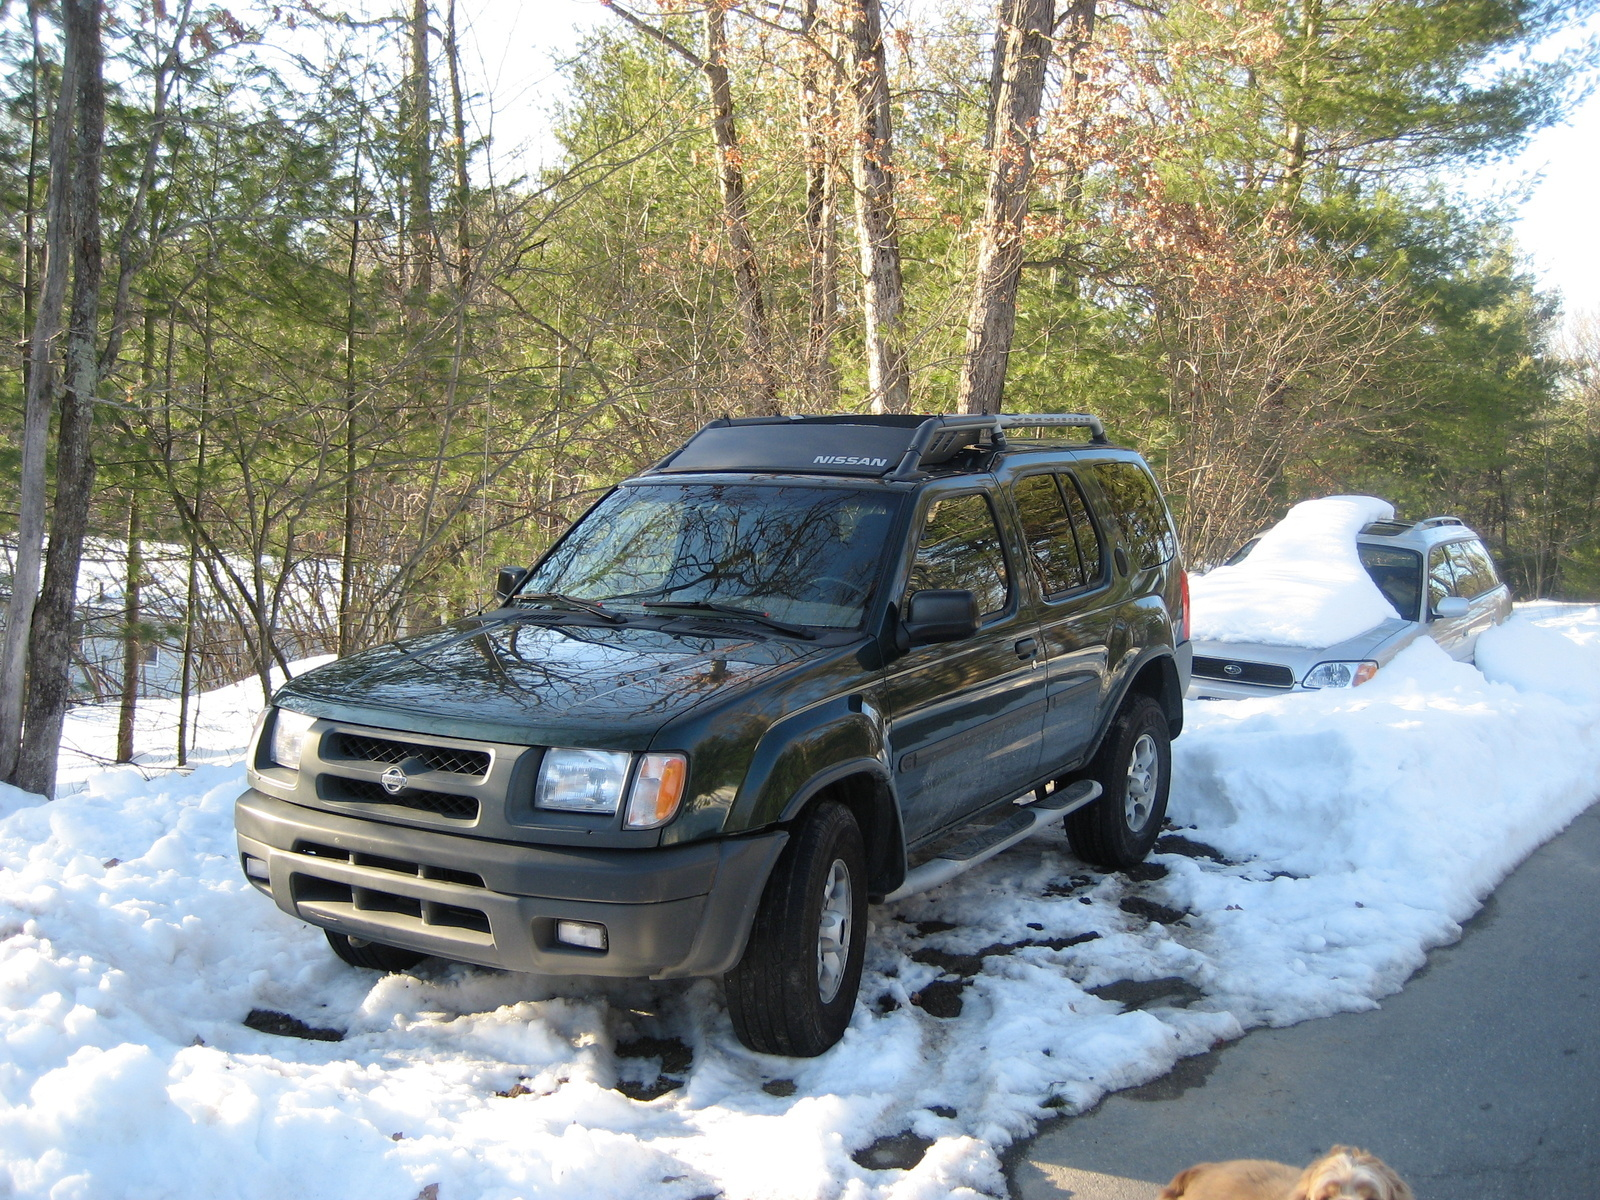 2000 Land Rover Discovery Series II User Reviews CarGurus